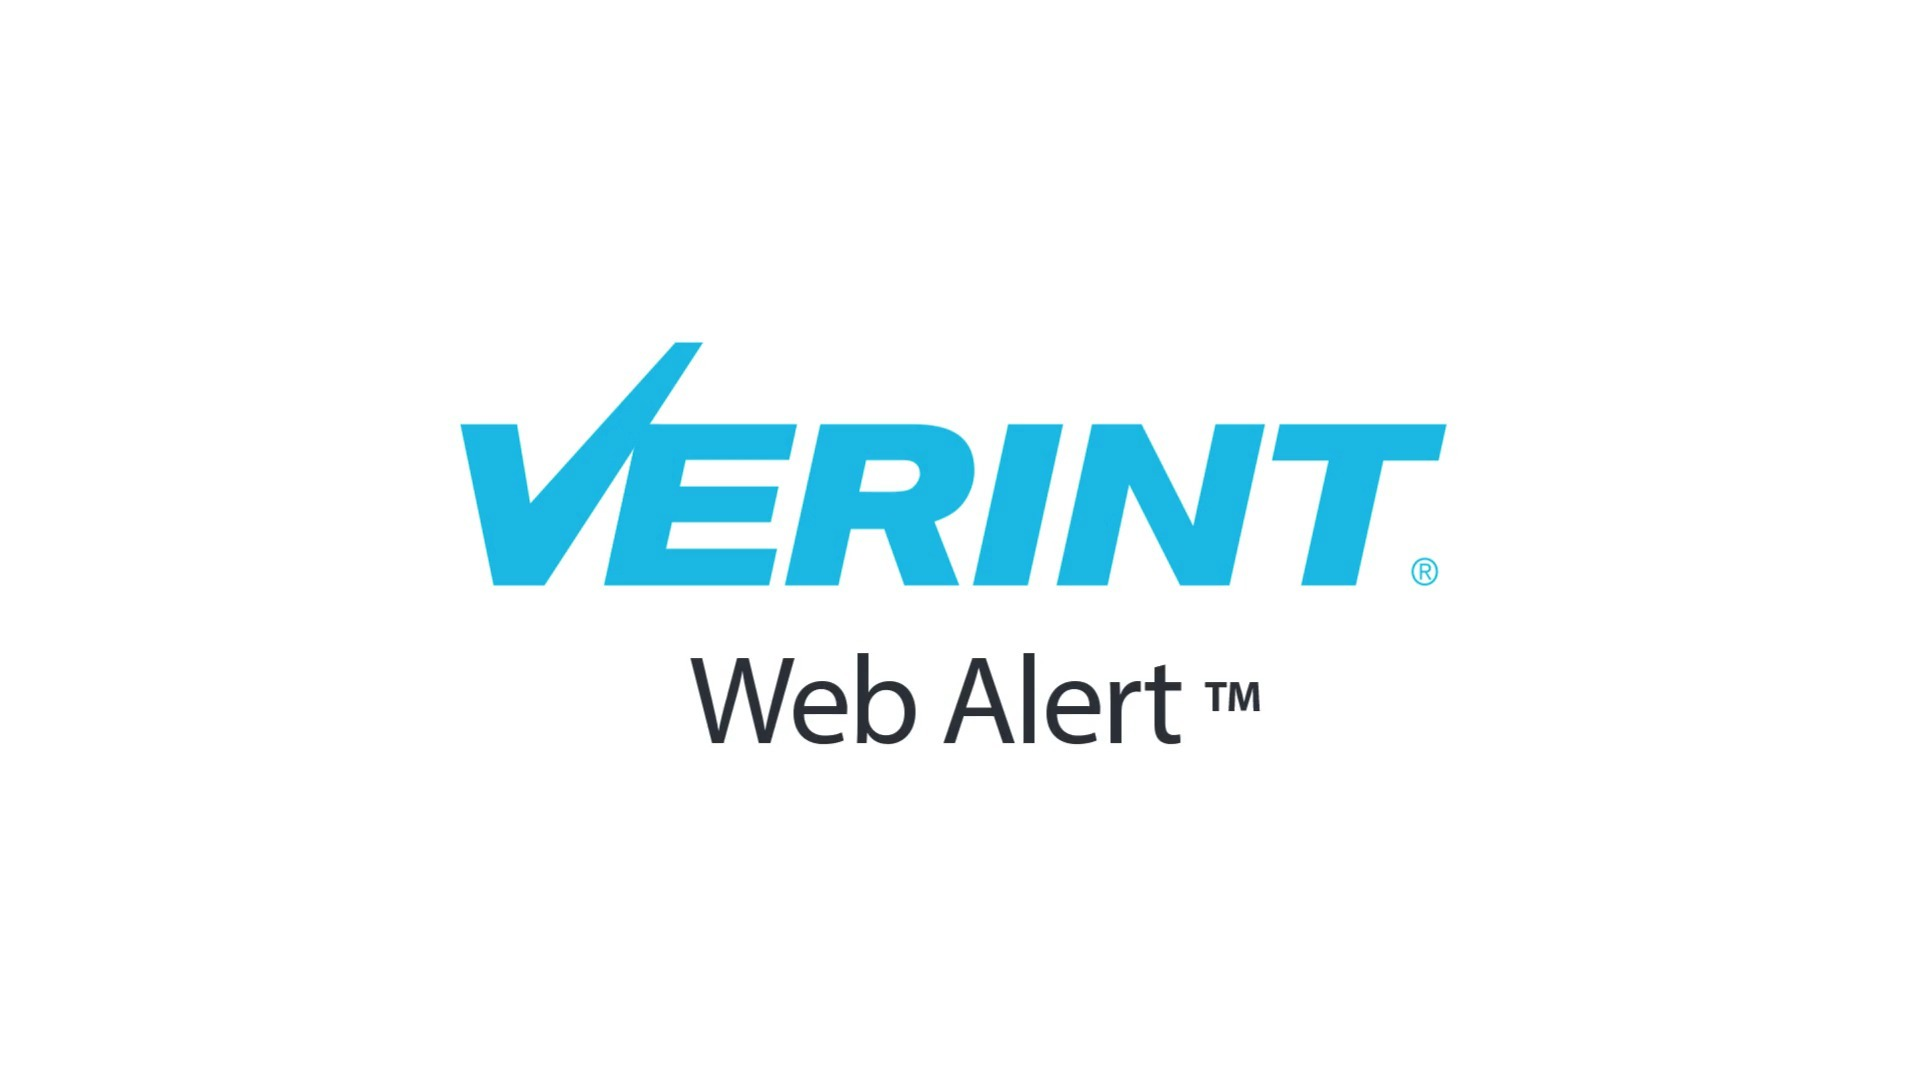 Verint Web Alert